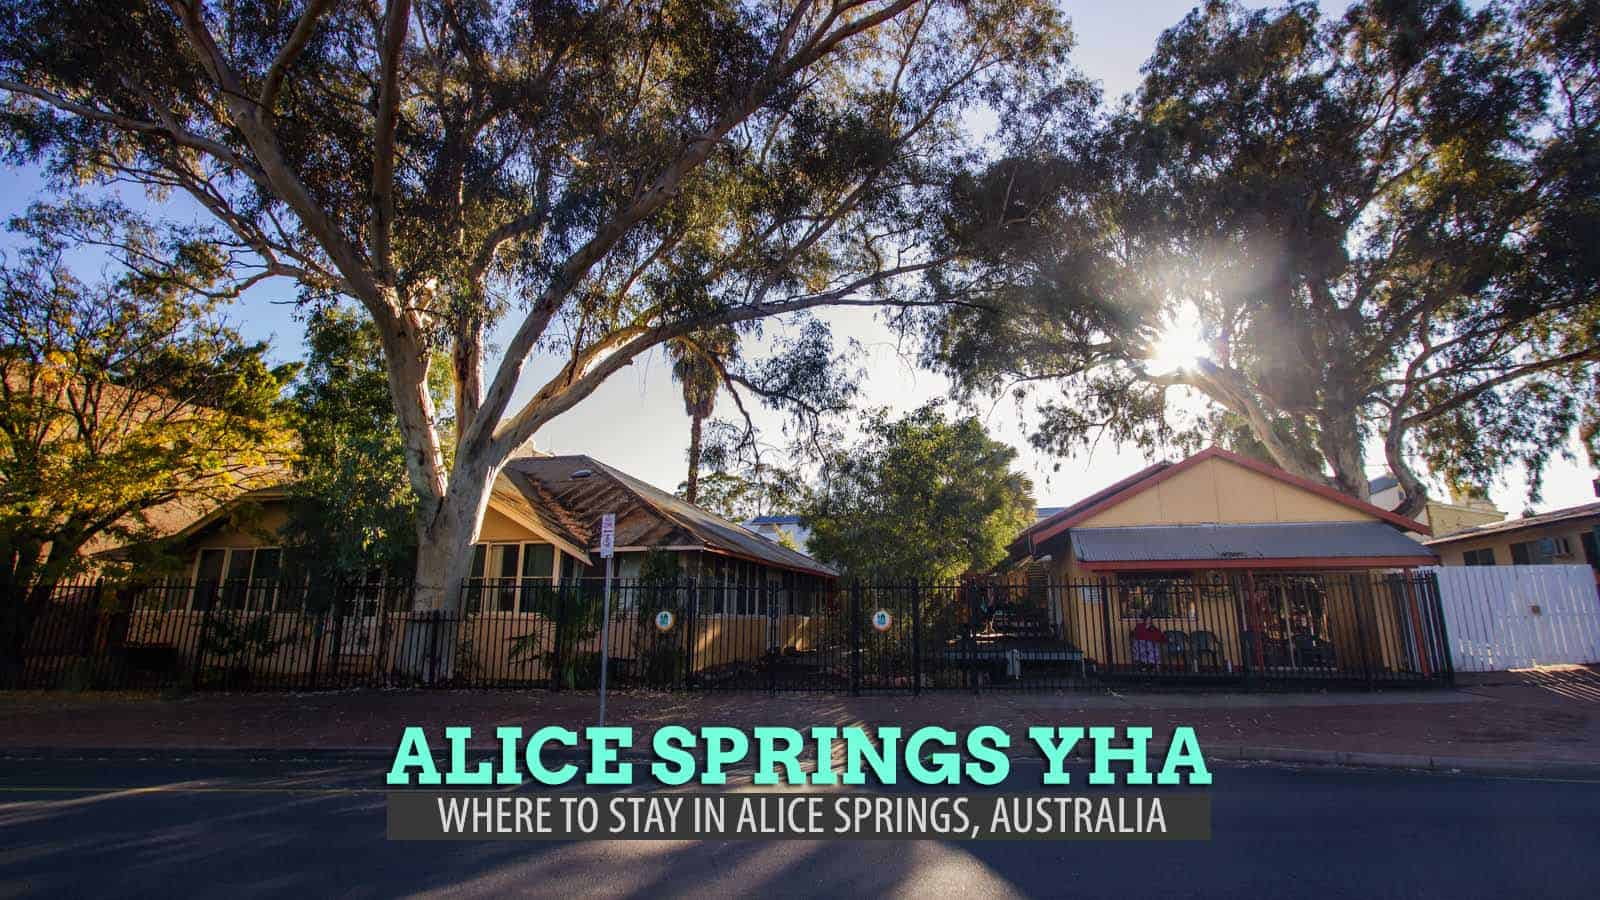 Alice Springs YHA Hostel: Where to Stay in Alice Springs, Australia